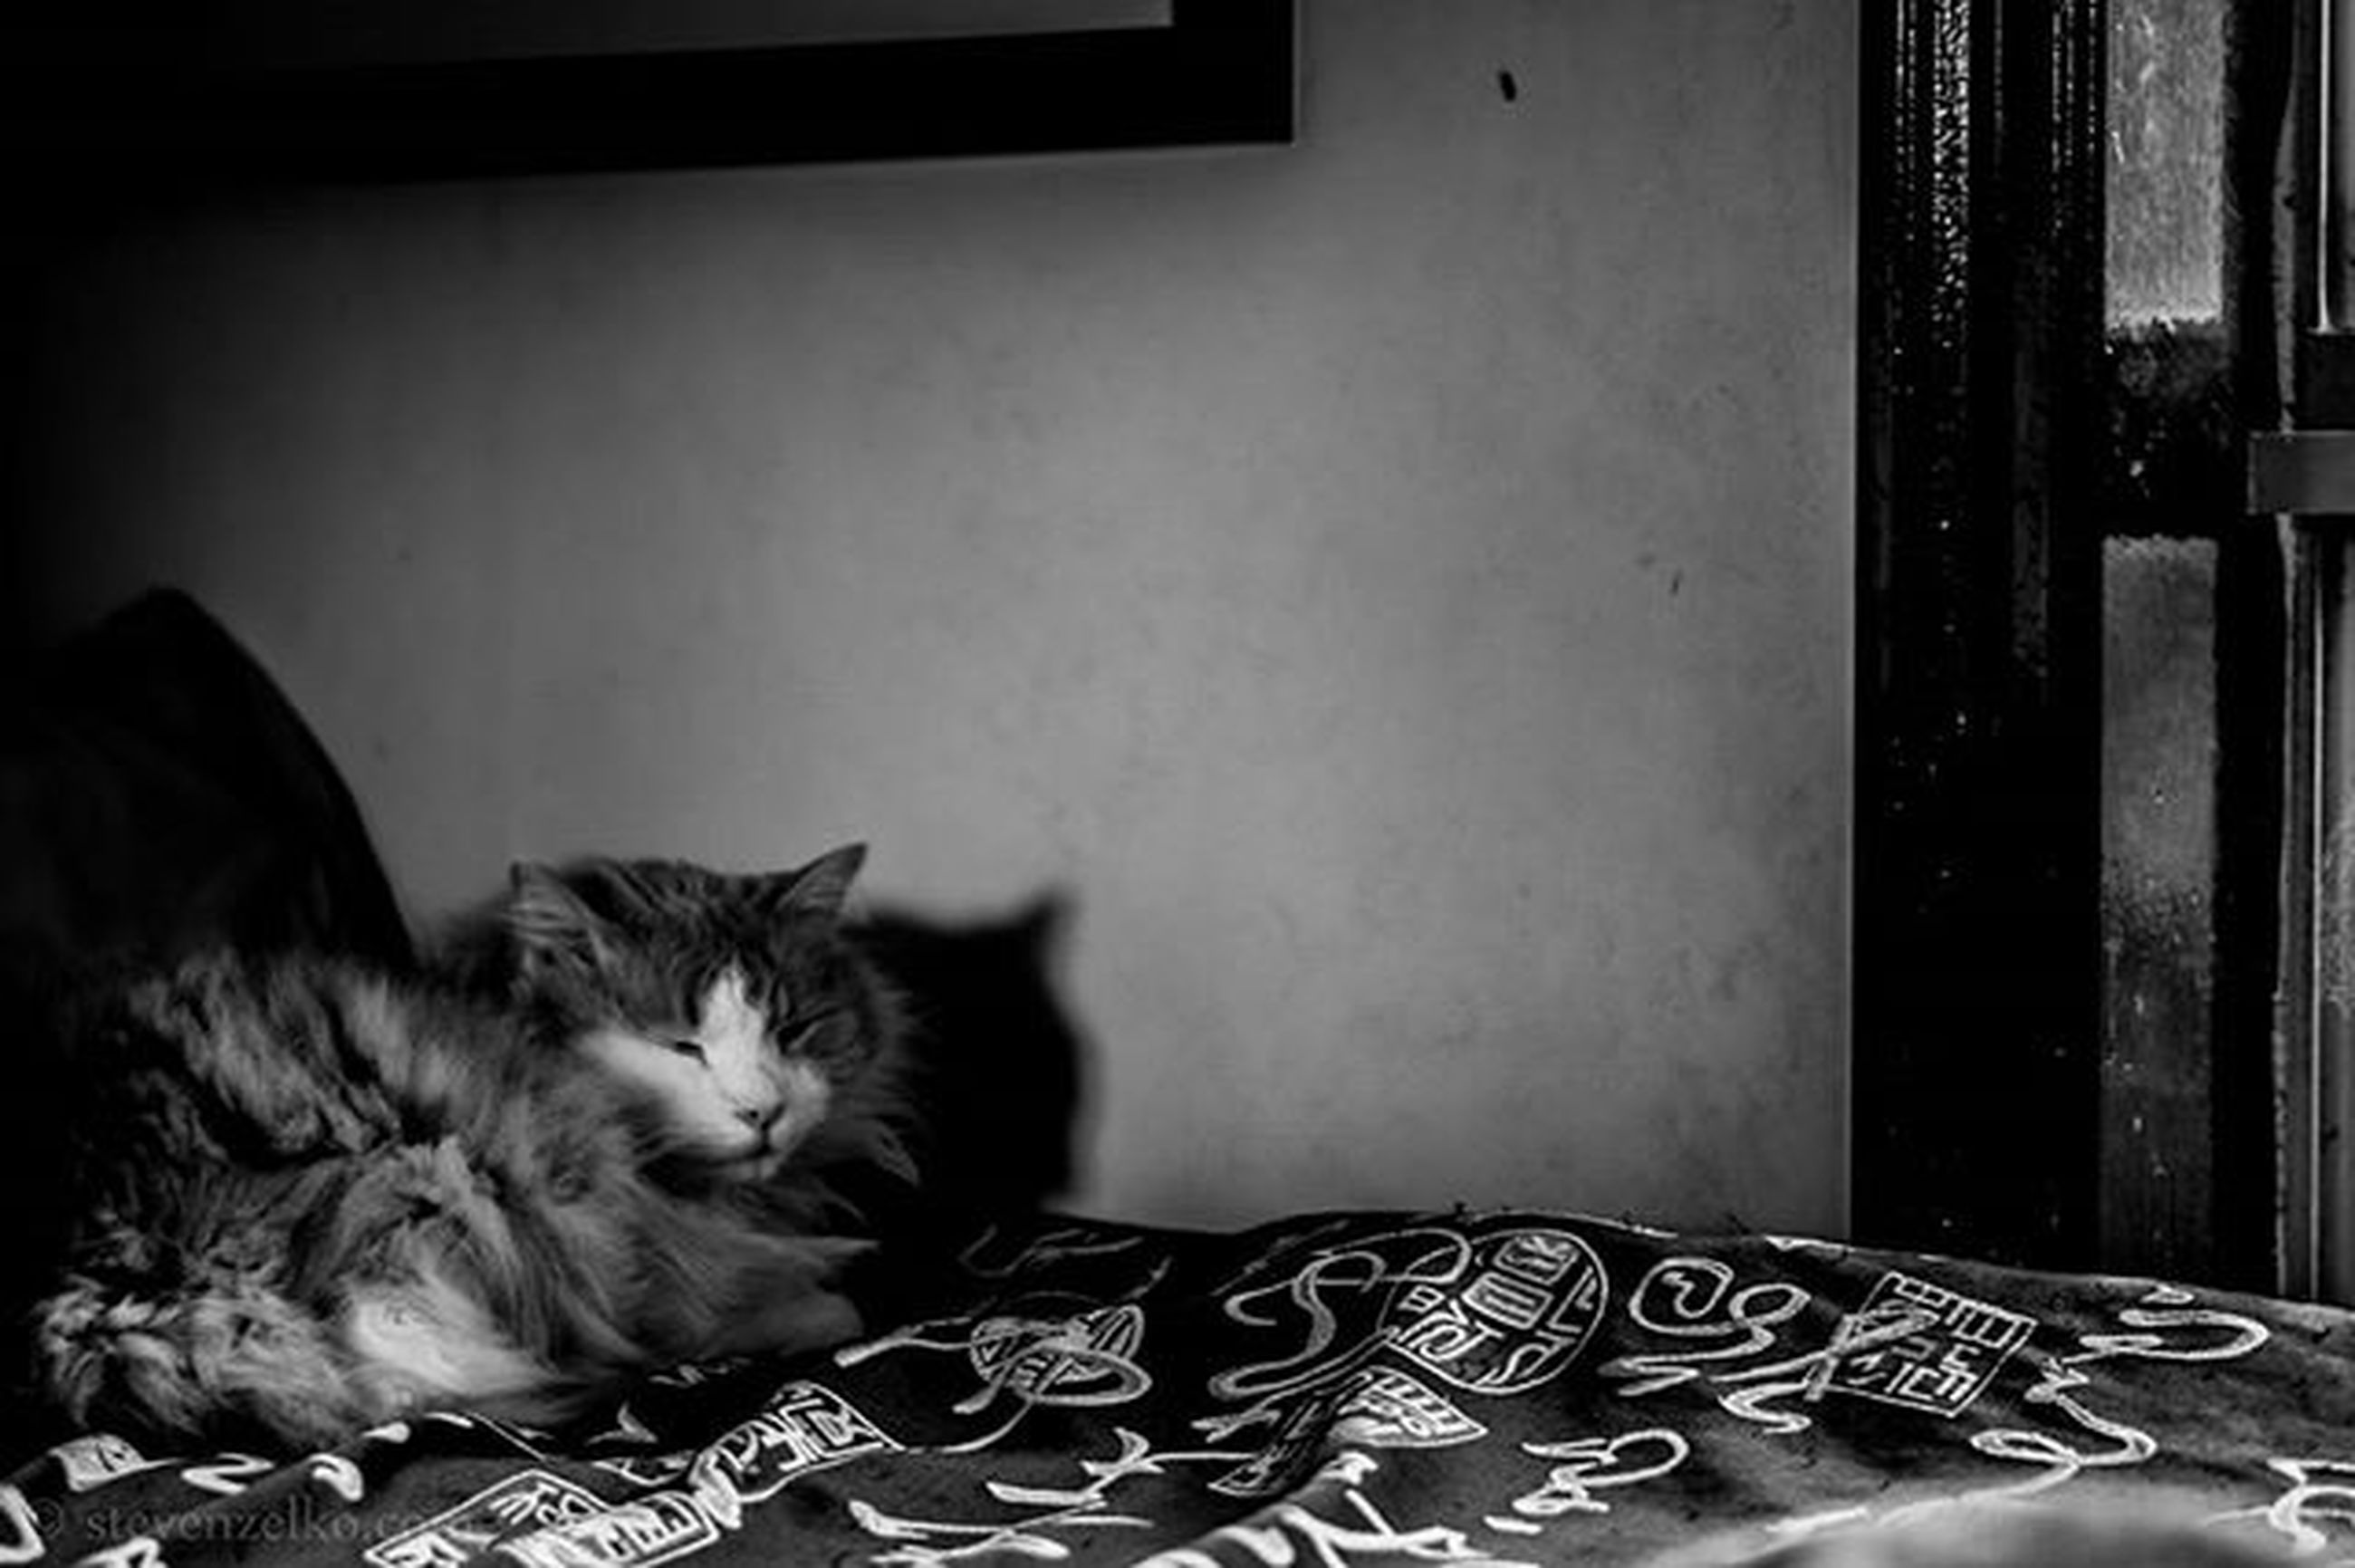 pets, domestic animals, indoors, domestic cat, animal themes, cat, mammal, one animal, relaxation, home interior, feline, lying down, resting, bed, sleeping, home, house, whisker, window, wall - building feature